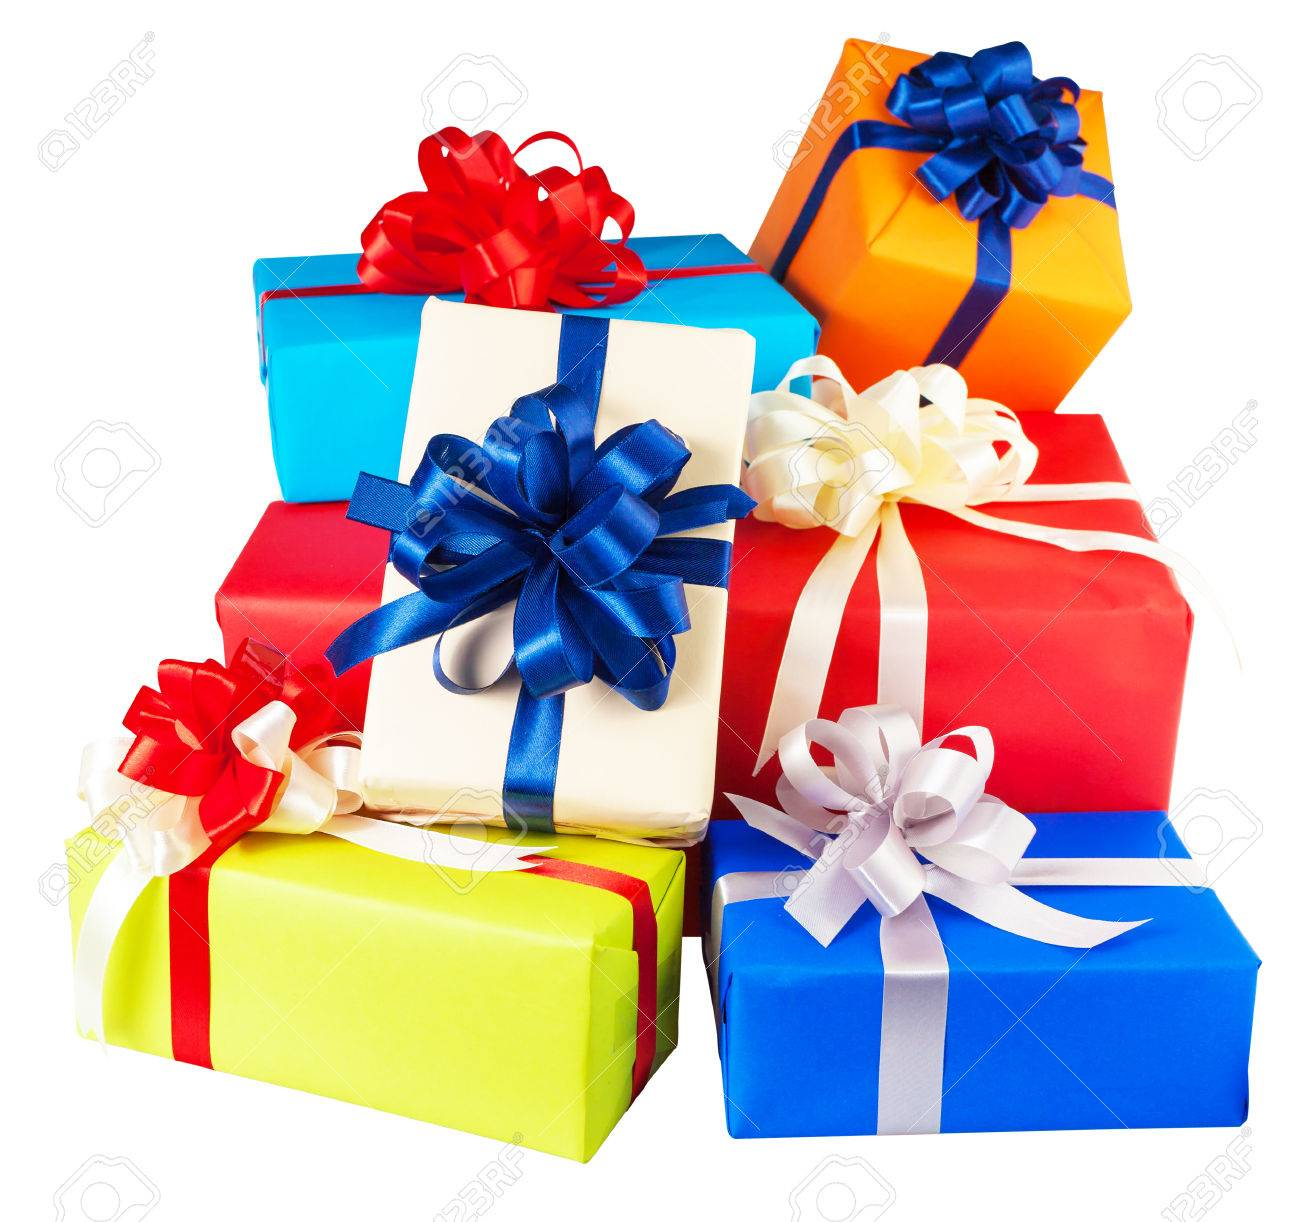 Piles of gift boxes wrapped in colorful paper, ribbon, bow ,Isolated on white. for anniversary, new year, birth day - 49248215